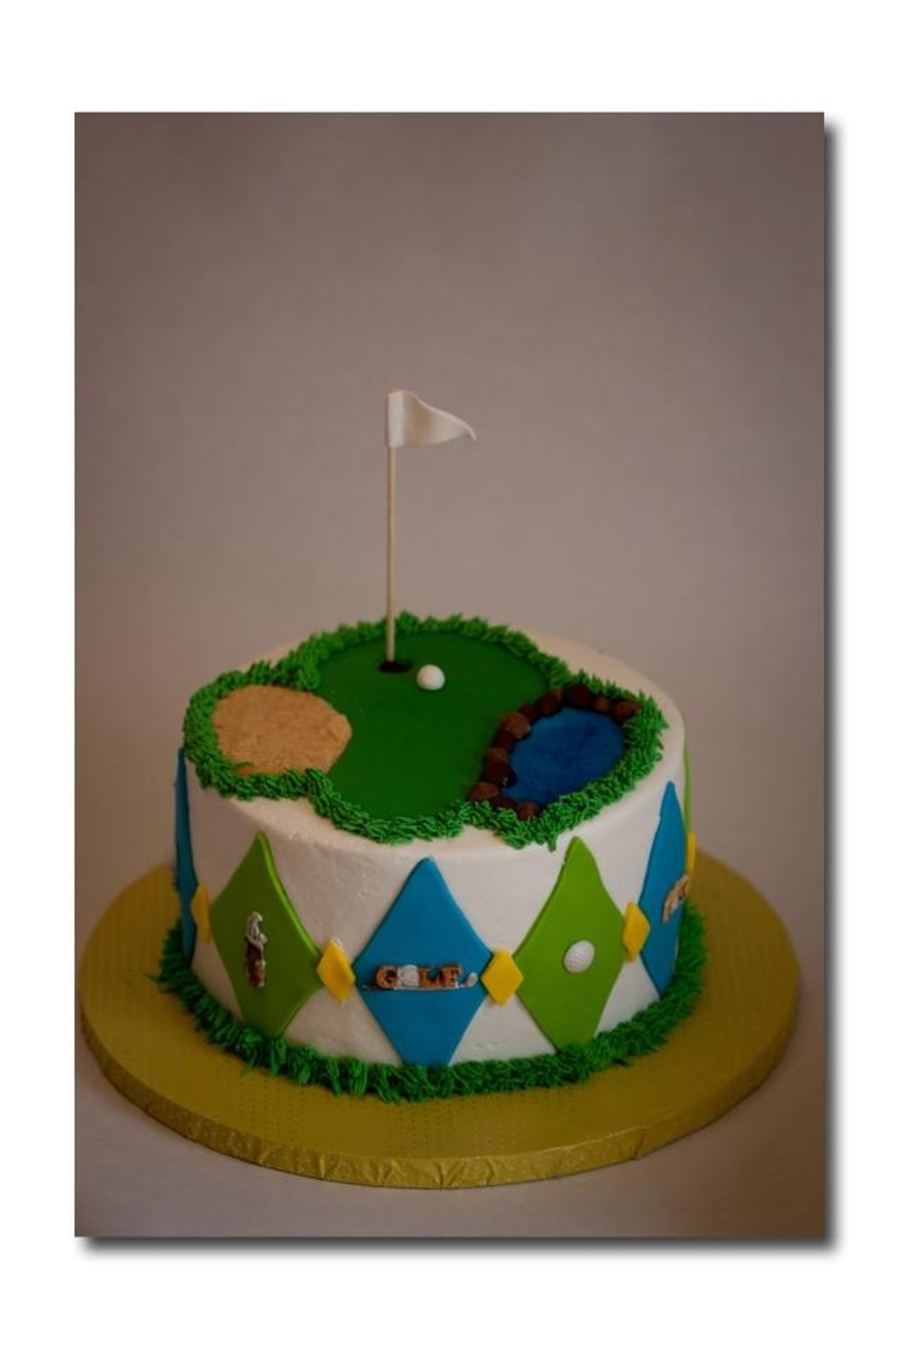 Birthday Cake For A 95 Year Old Golfer on Cake Central